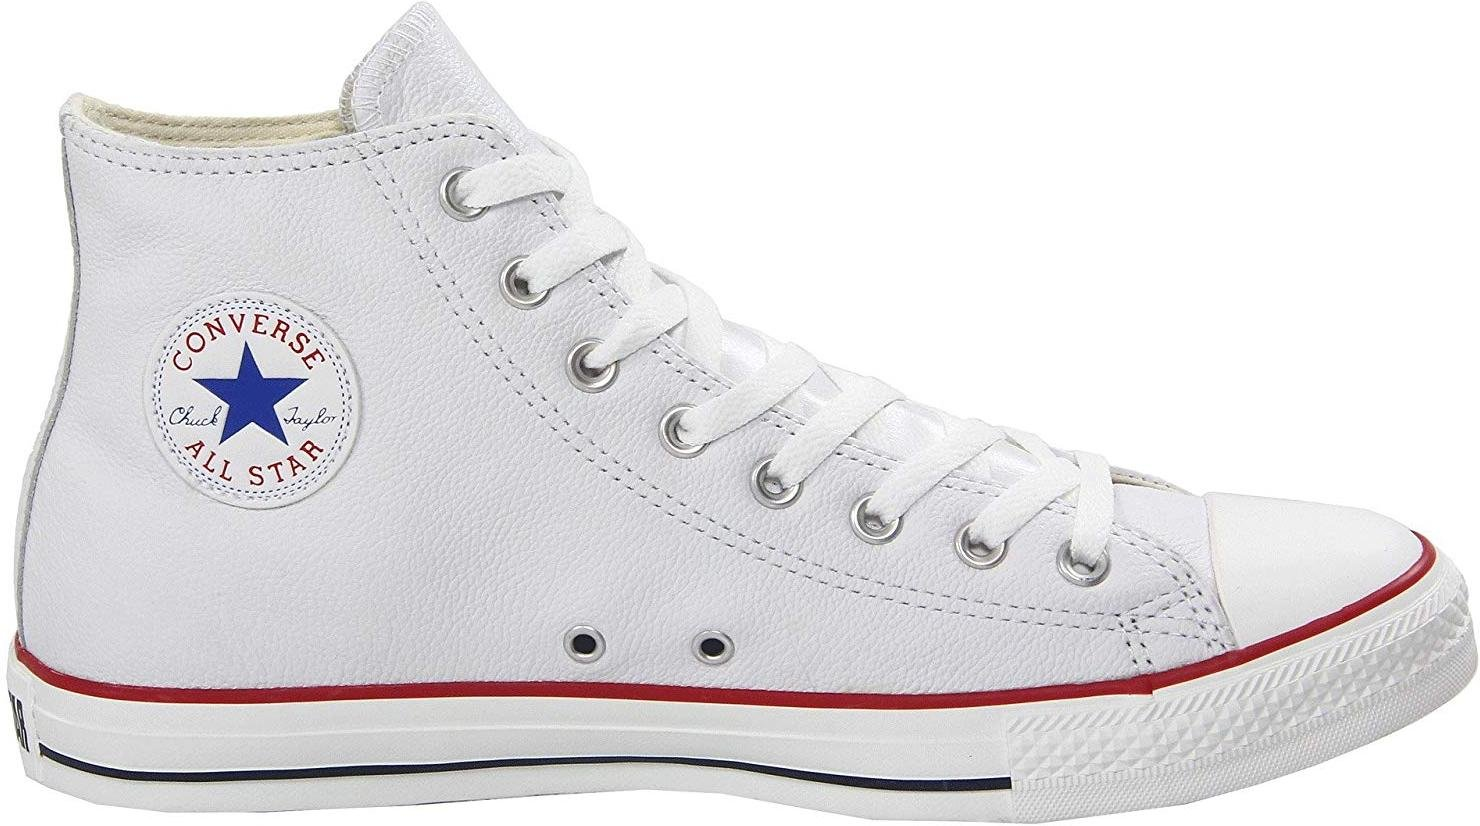 Obuća Converse converse chuck taylor as high leather